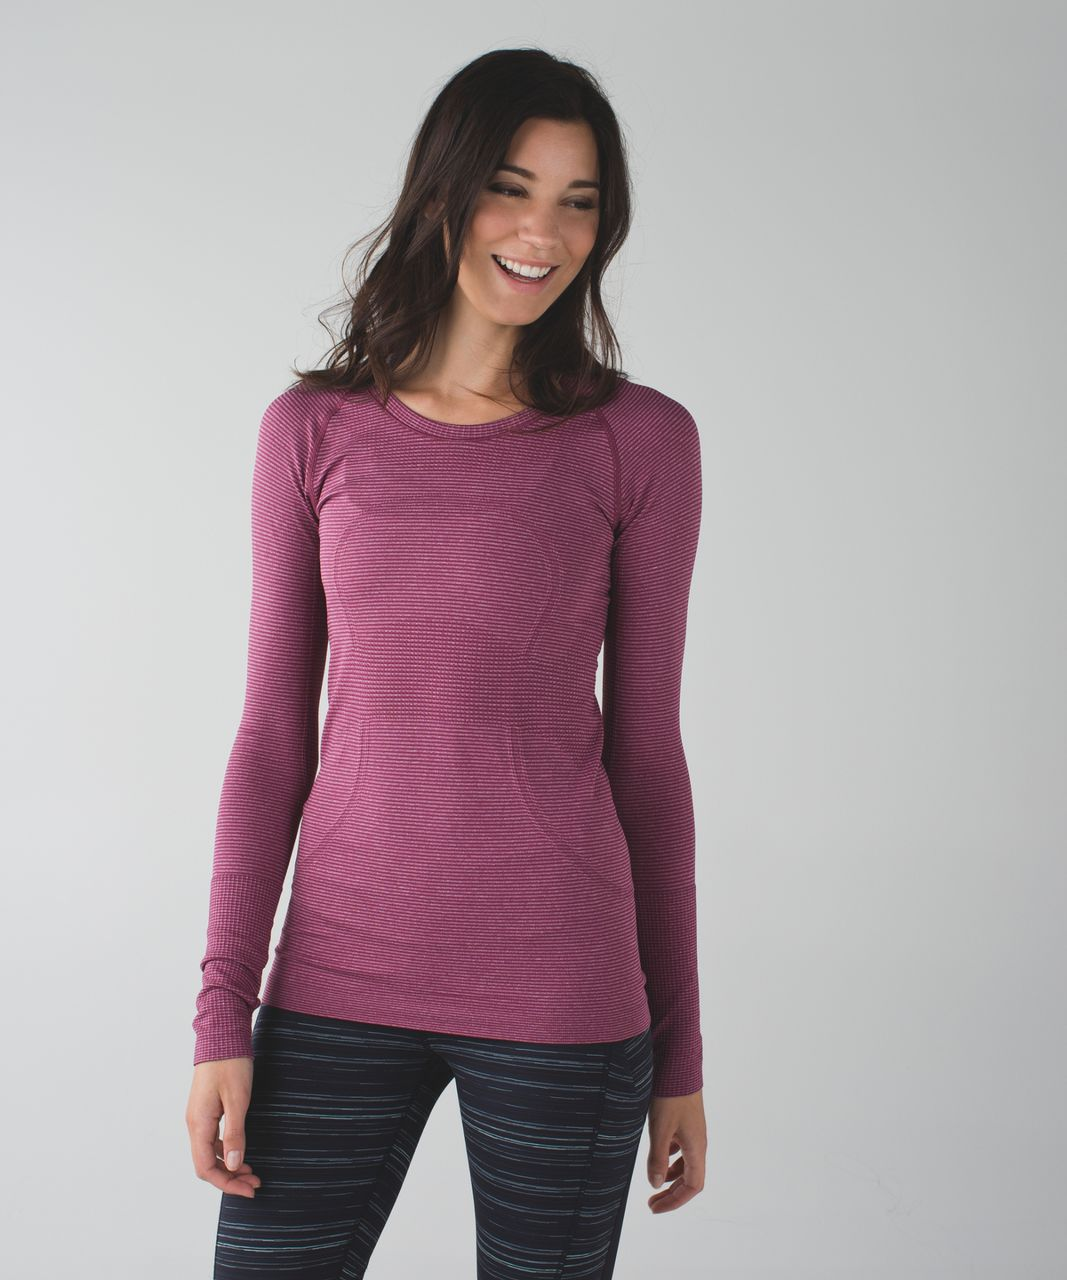 Lululemon Swiftly Tech Long Sleeve Crew - Heathered Dashing Purple (First Release)